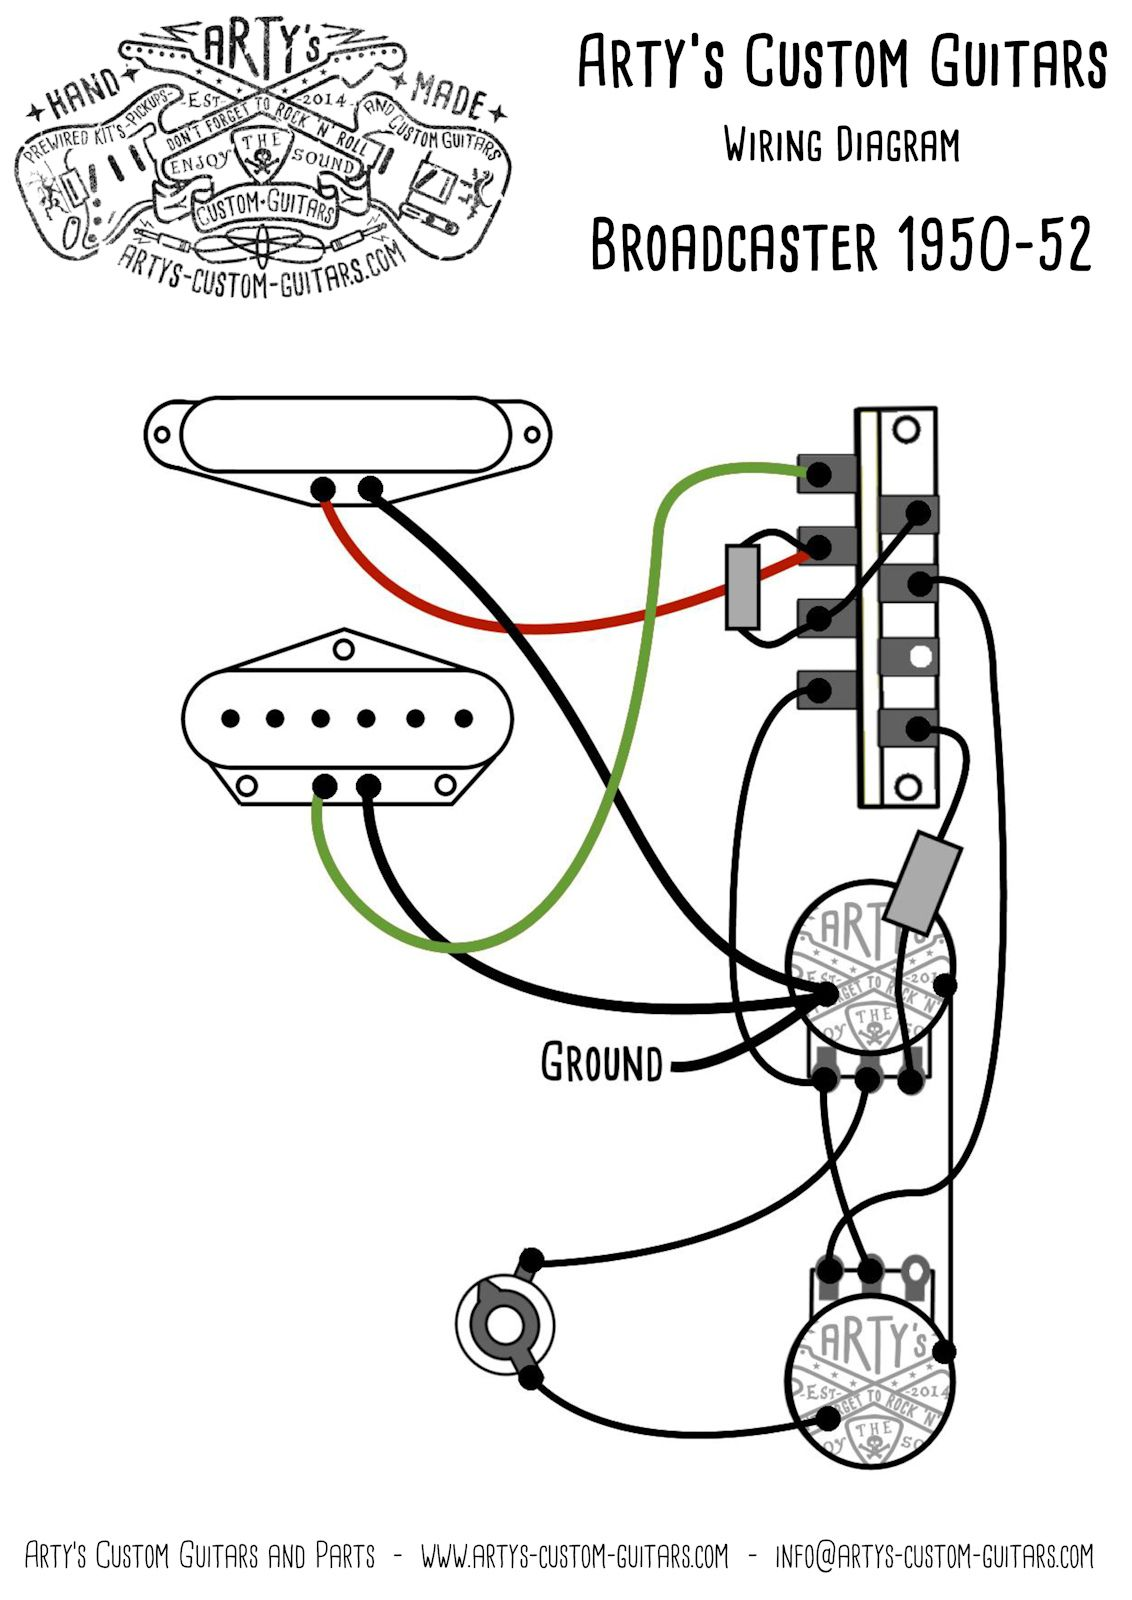 Broadcaster Wiring Diagram Library Vintage Gibson Diagrams Artys Custom Guitars Nocaster 1950 52 Pre Wired Prewired Kit Assembly